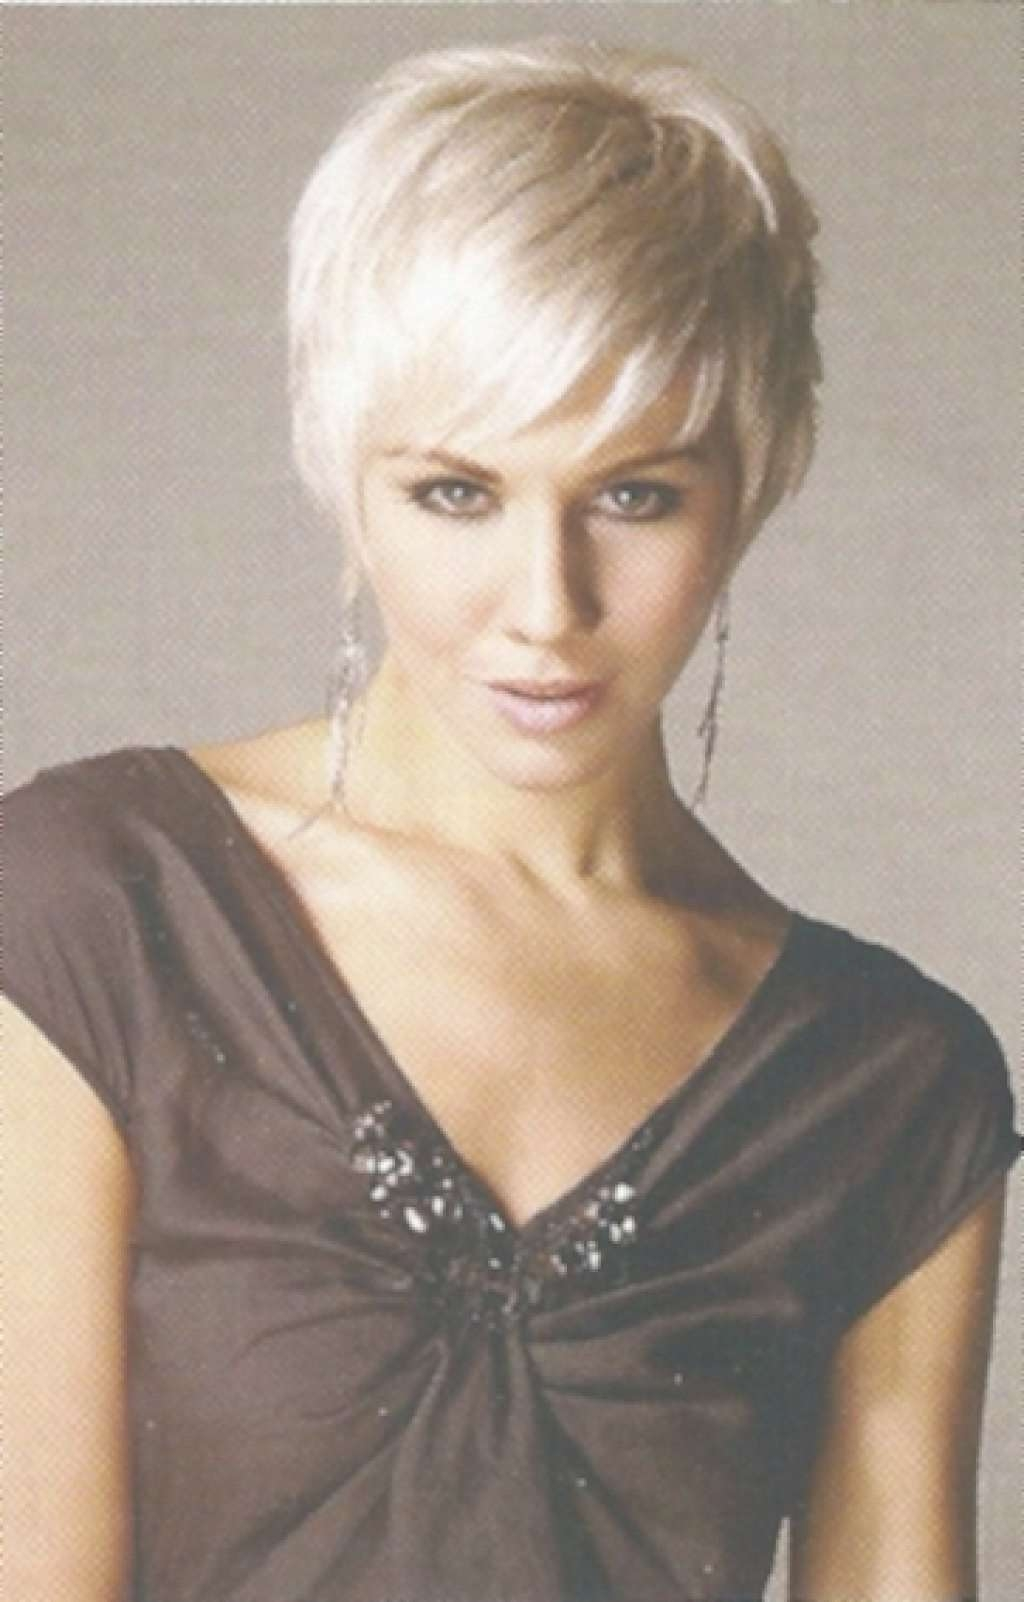 Women Hairstyles For Thin Hair Pixie Haircut For Newest Blonde Pixie Hairstyles (View 14 of 15)